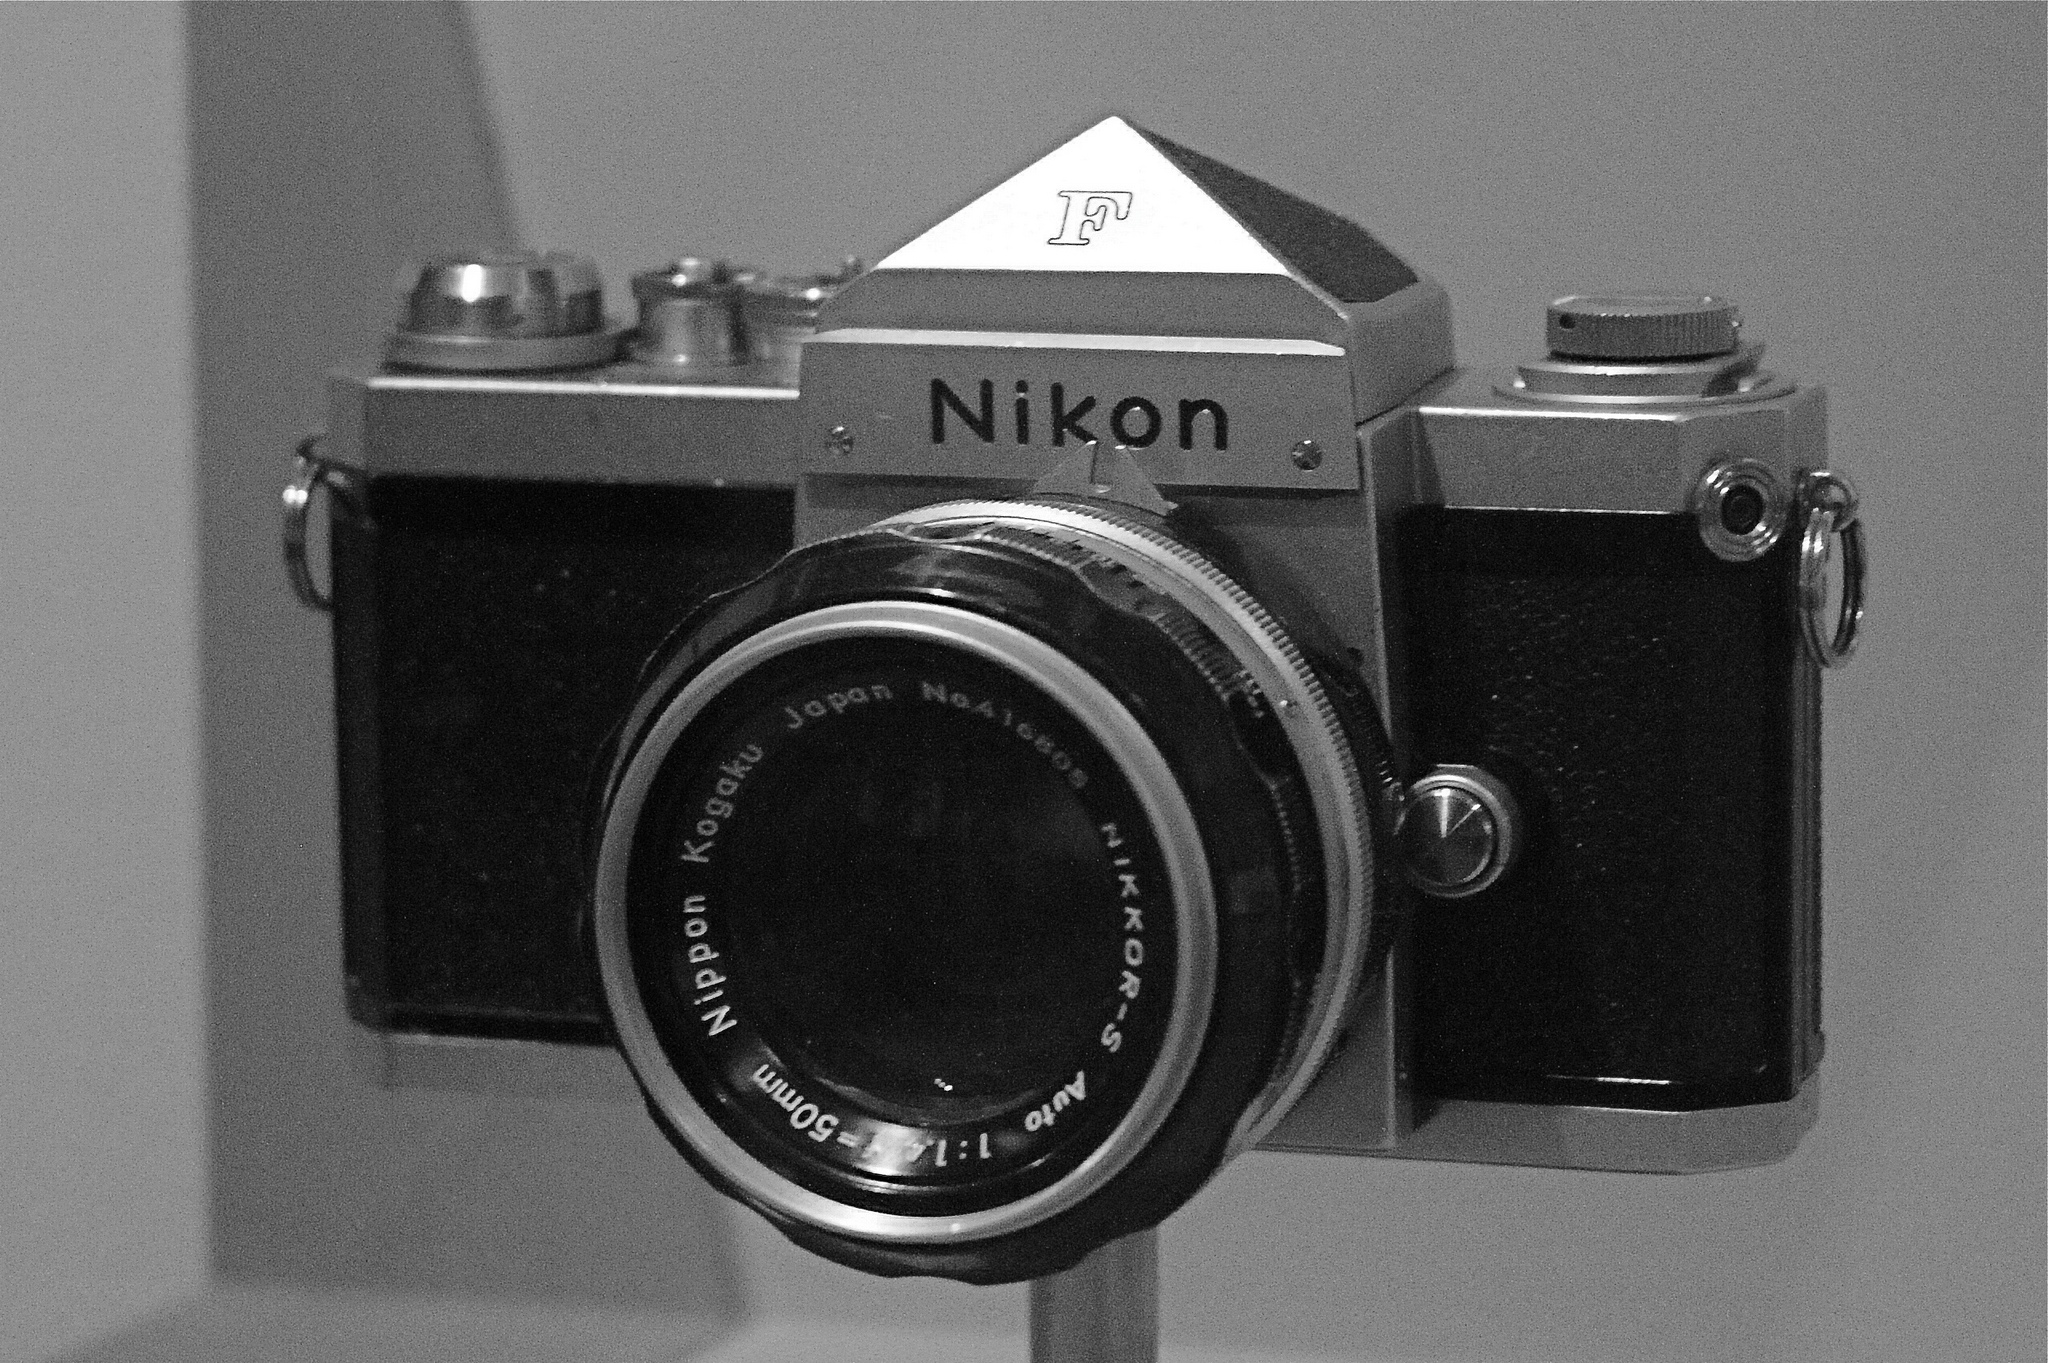 Diane Arbus' Nikon F, CC Image Courtesy of Floris van Helm on Flickr